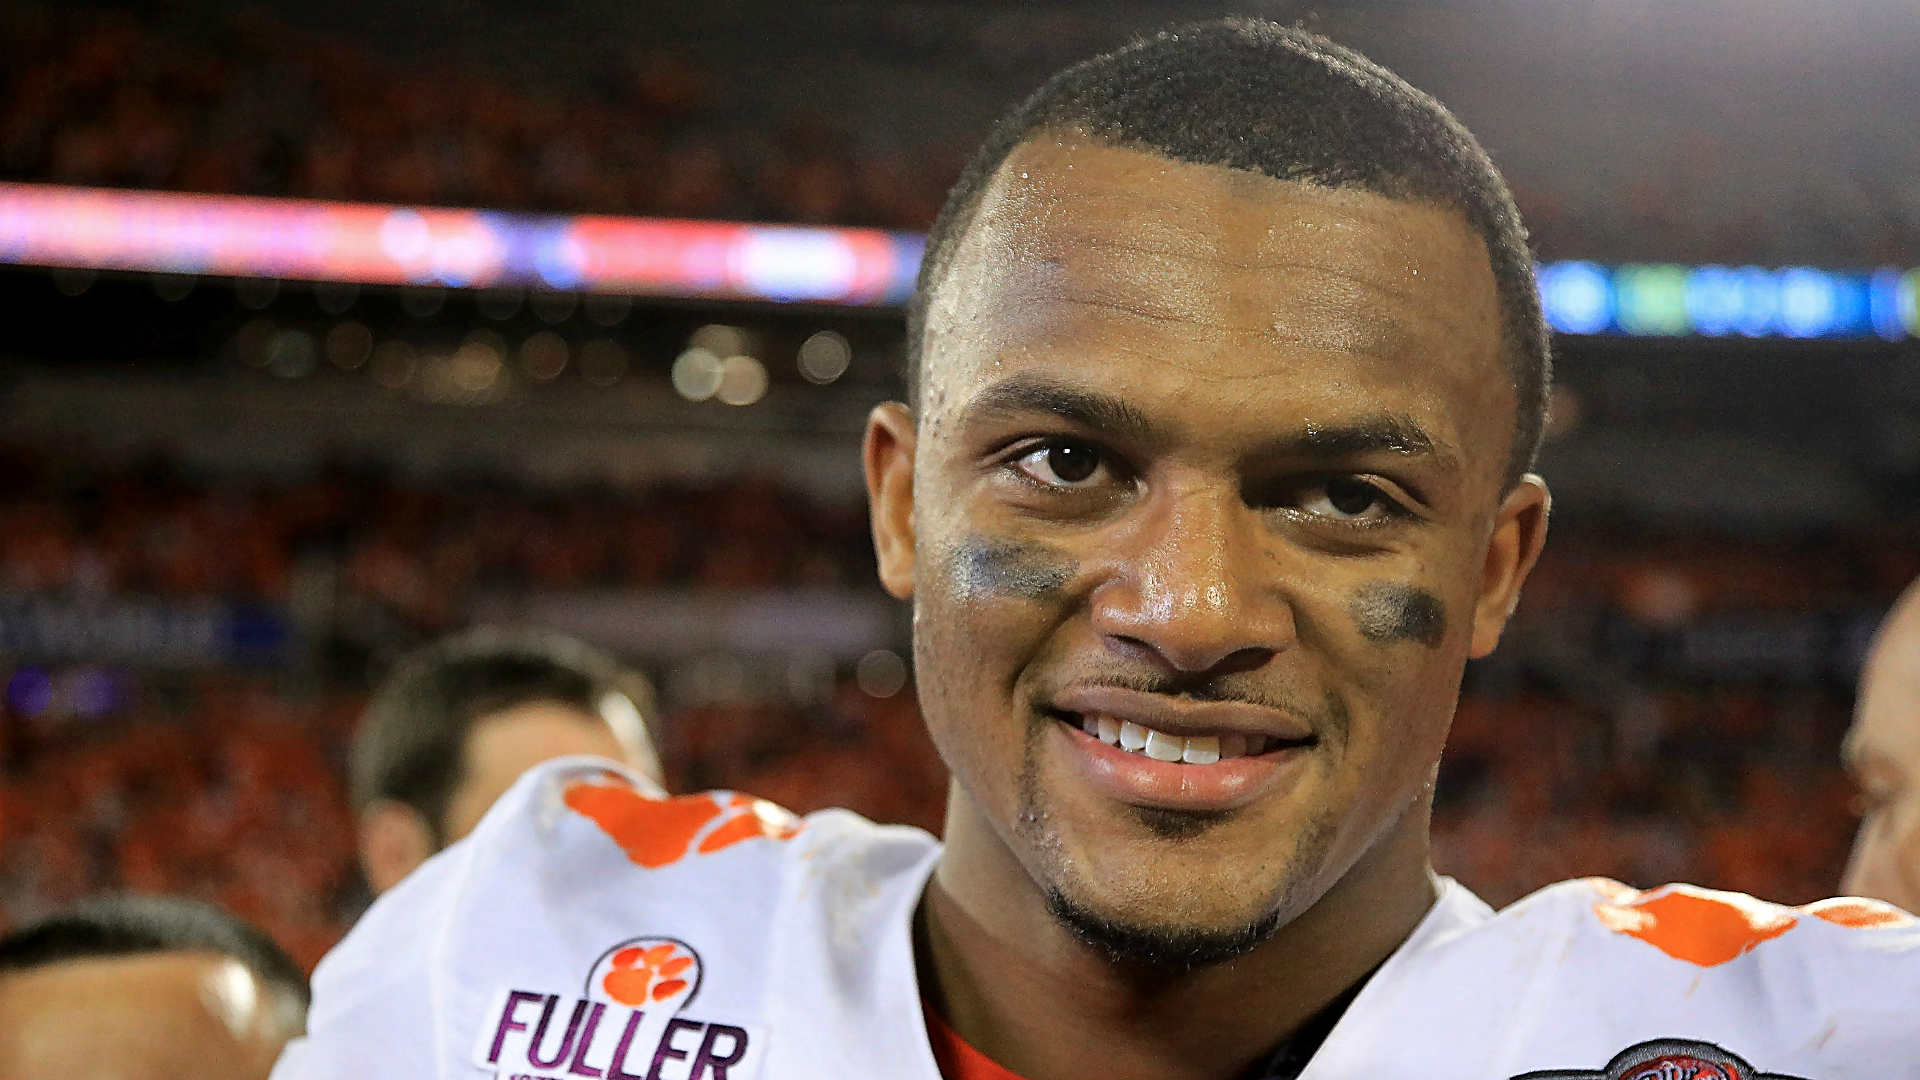 Clemson DB: We faced better QBs than Barrett